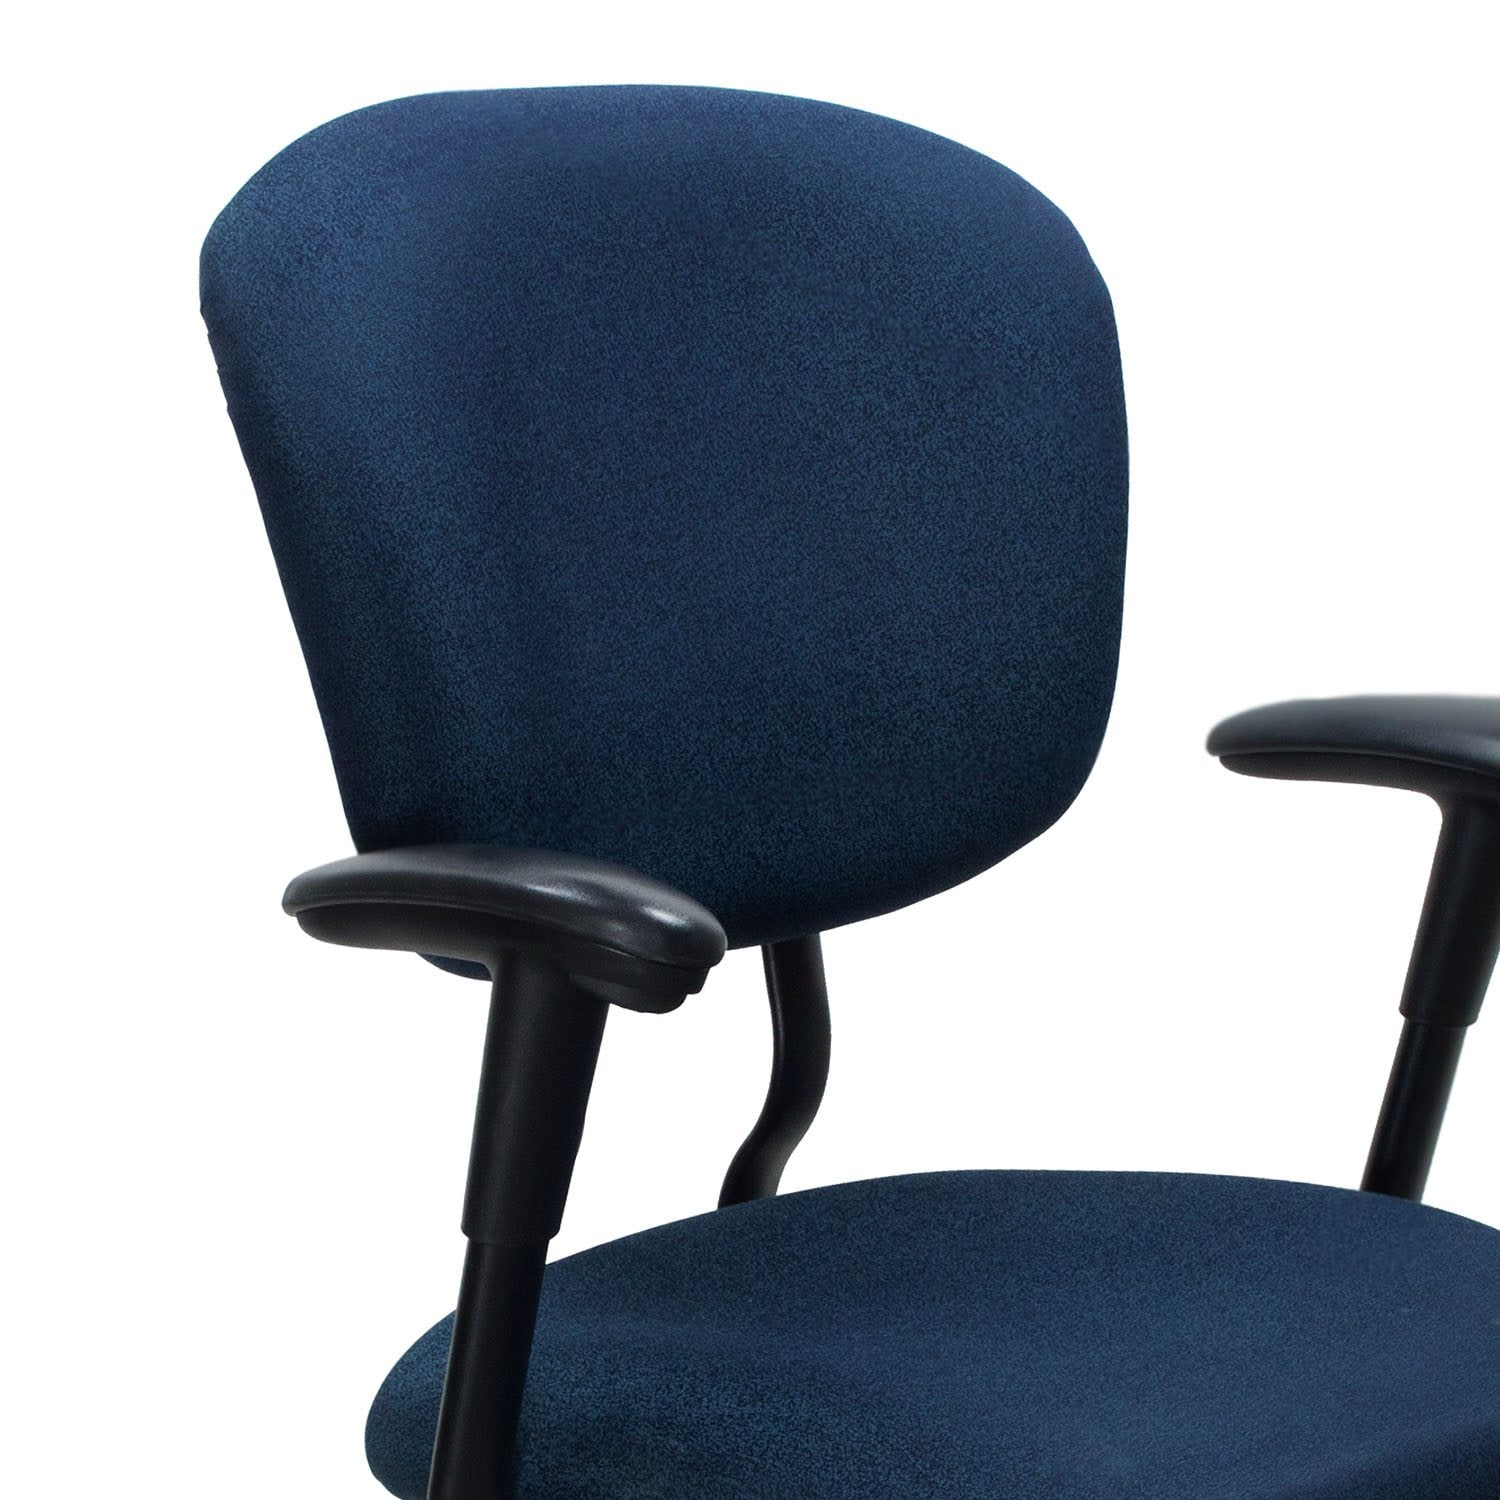 xl desk chair country french chairs haworth improv used task blue speckle national